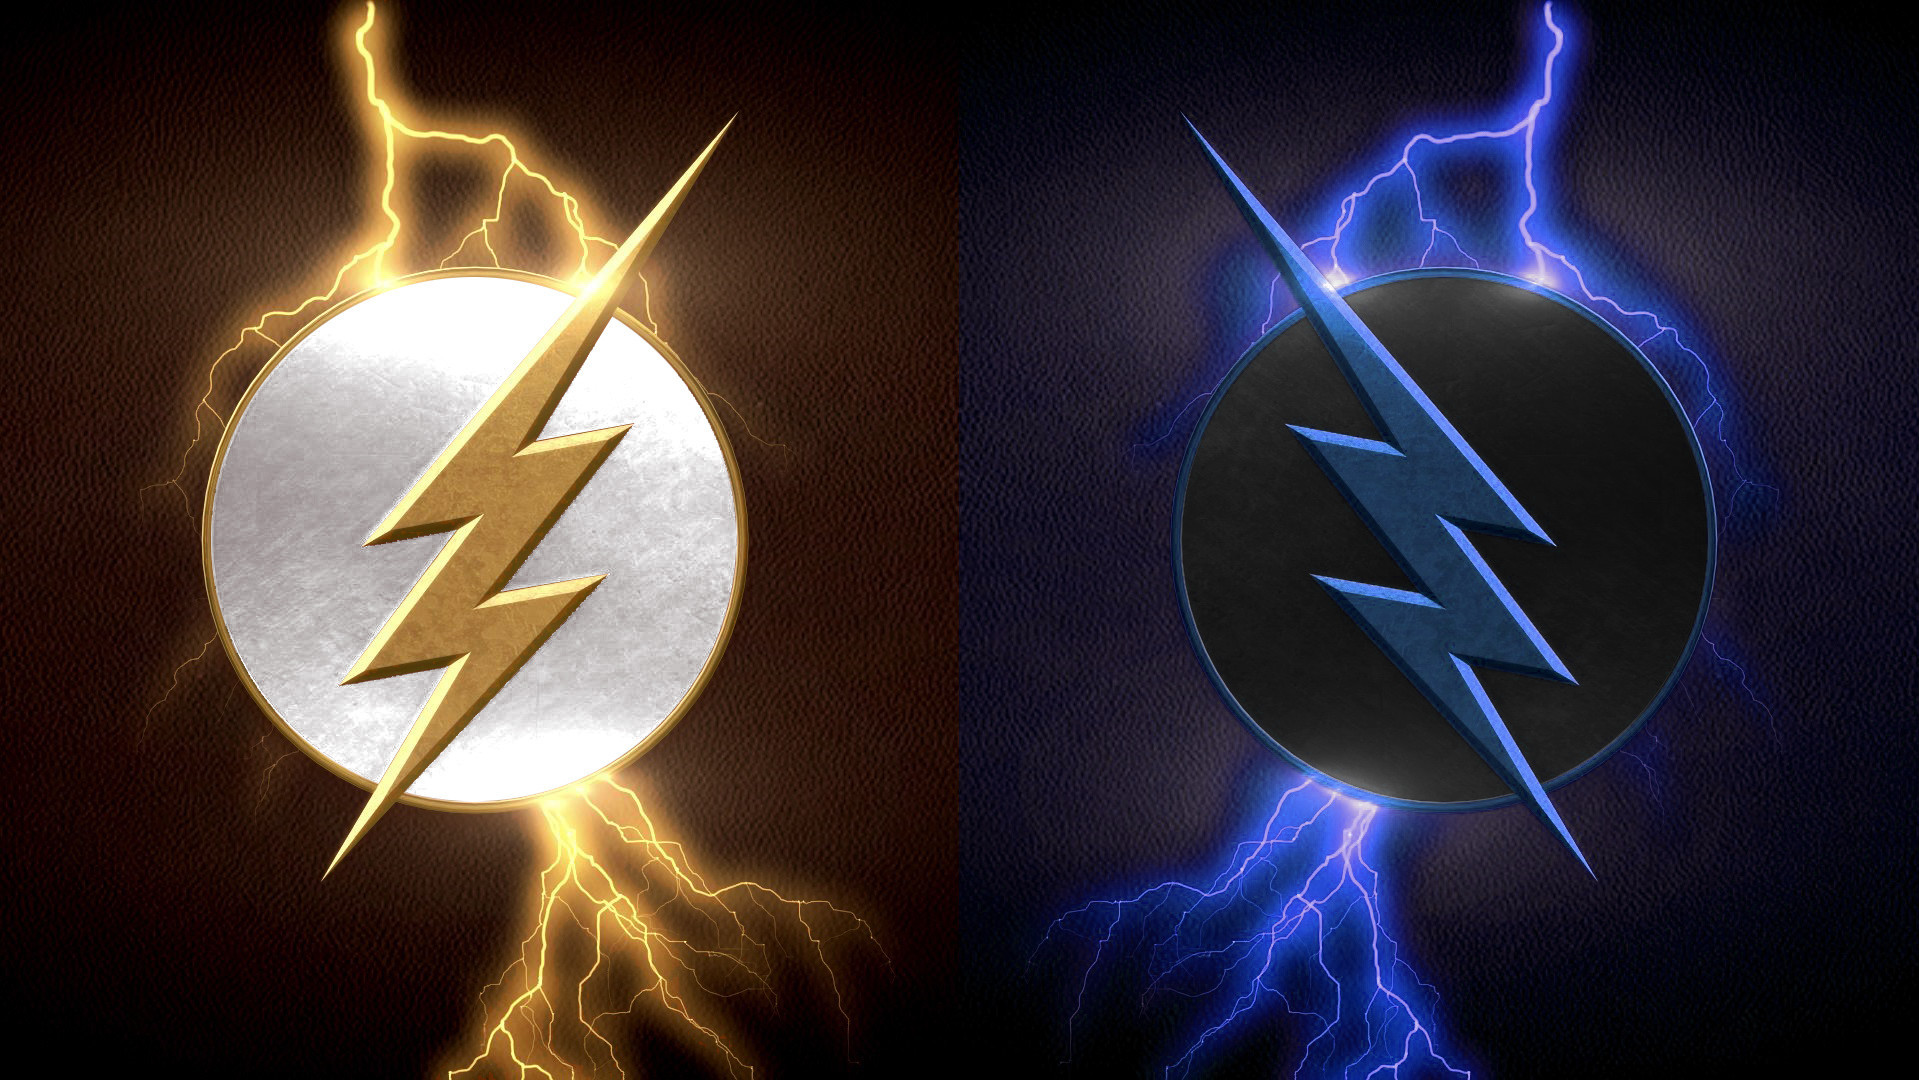 Zoom The Flash Wallpapers Wallpapertag